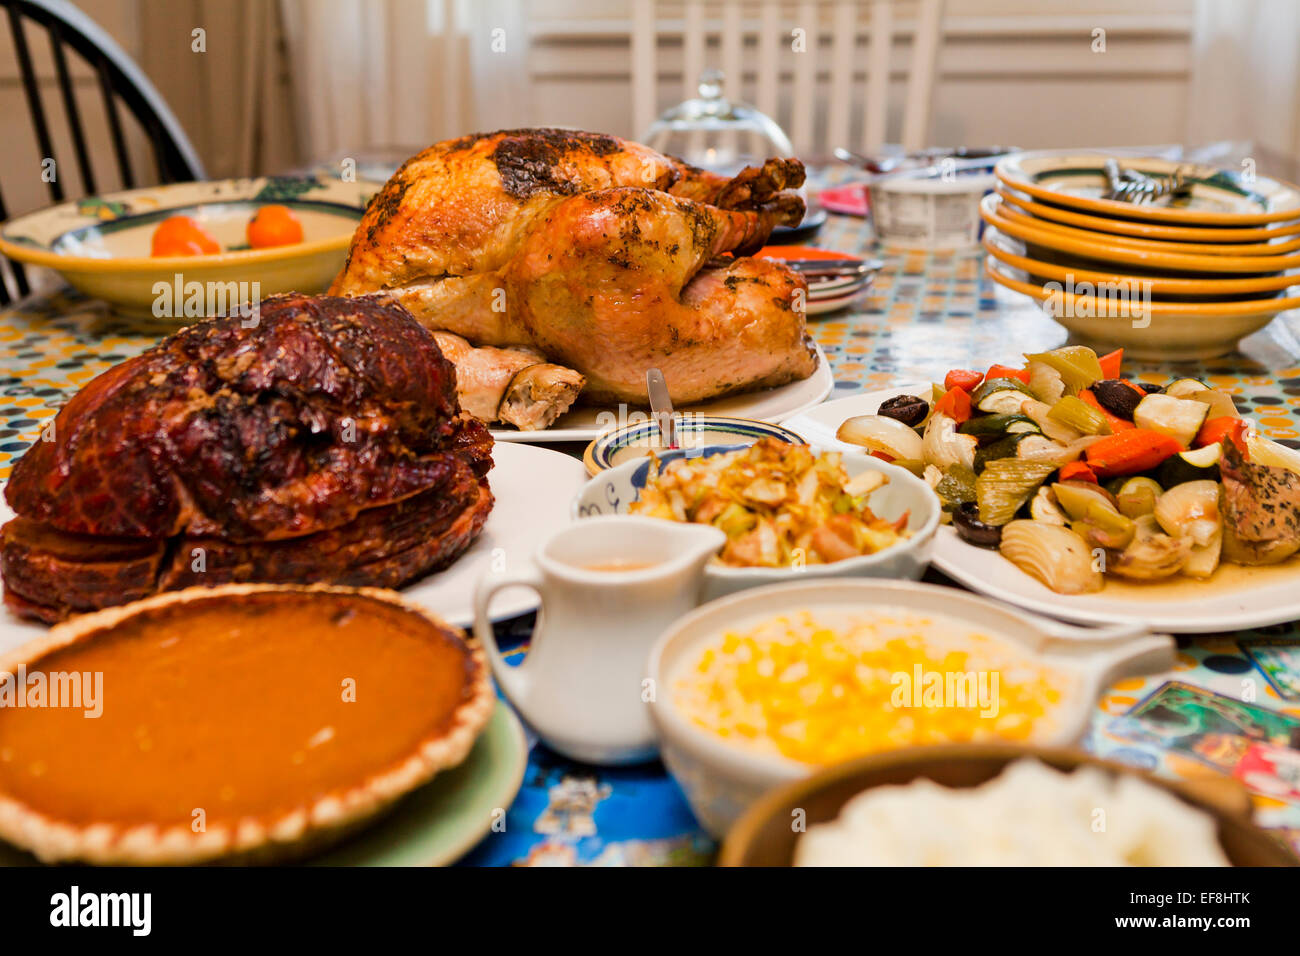 thanksgiving truthahn abendessen auf tisch usa stockfoto bild 78250947 alamy. Black Bedroom Furniture Sets. Home Design Ideas